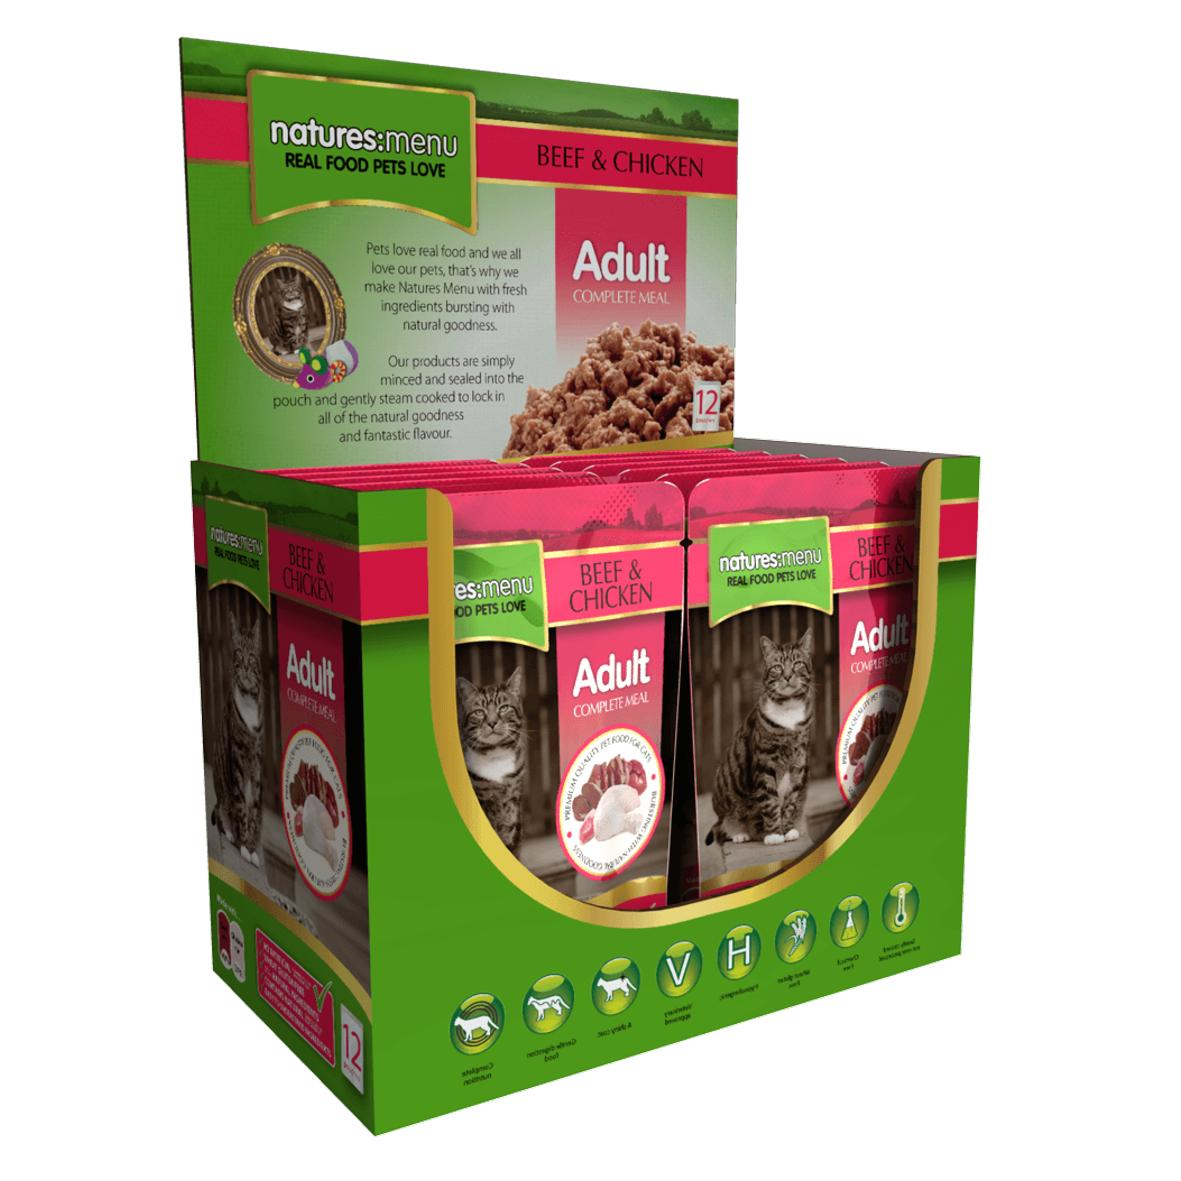 CLEARANCE Natures Menu Adult Complete Beef & Chicken Cat Pouches 12 x 100gm